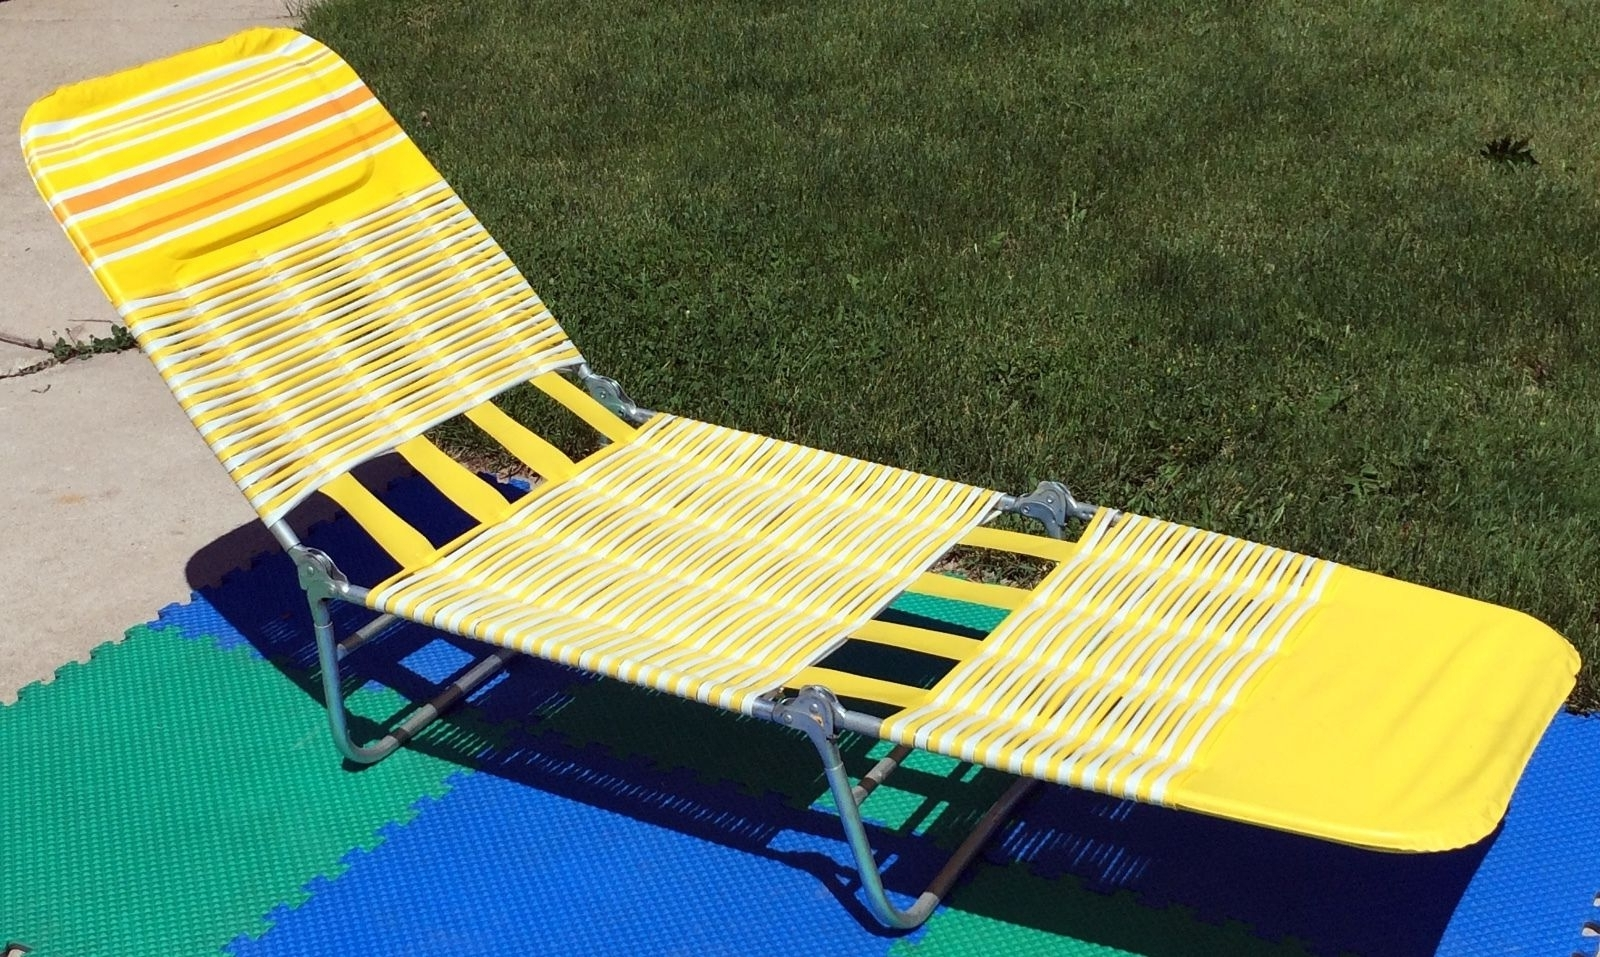 Web Chaise Lounge Lawn Chairs With Regard To Most Up To Date Uncategorized : Folding Chaise Lounge Chair In Fantastic Chaise (View 15 of 15)